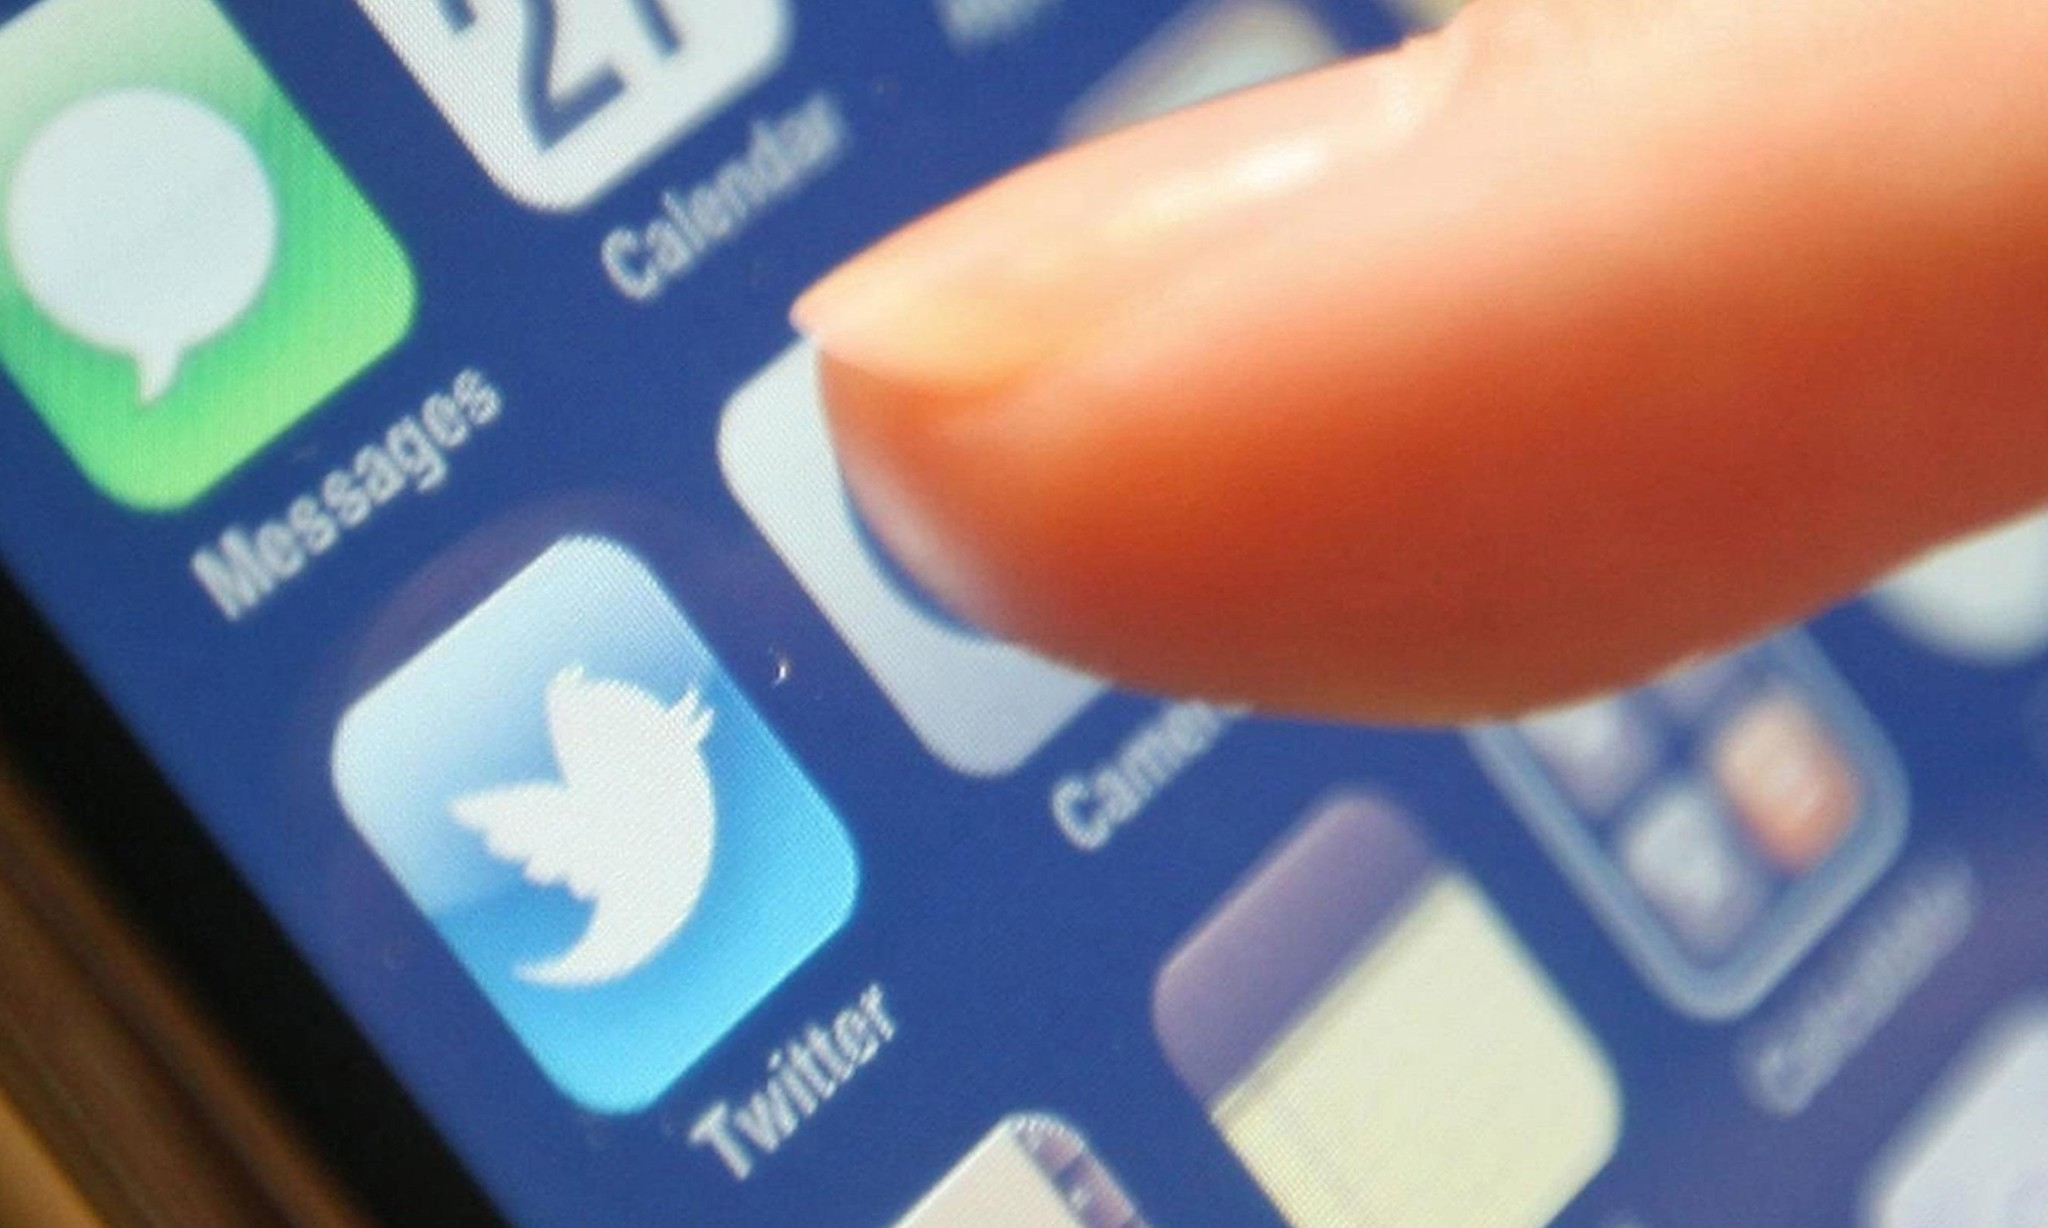 Hearts attack: is Twitter trying to kill its users?